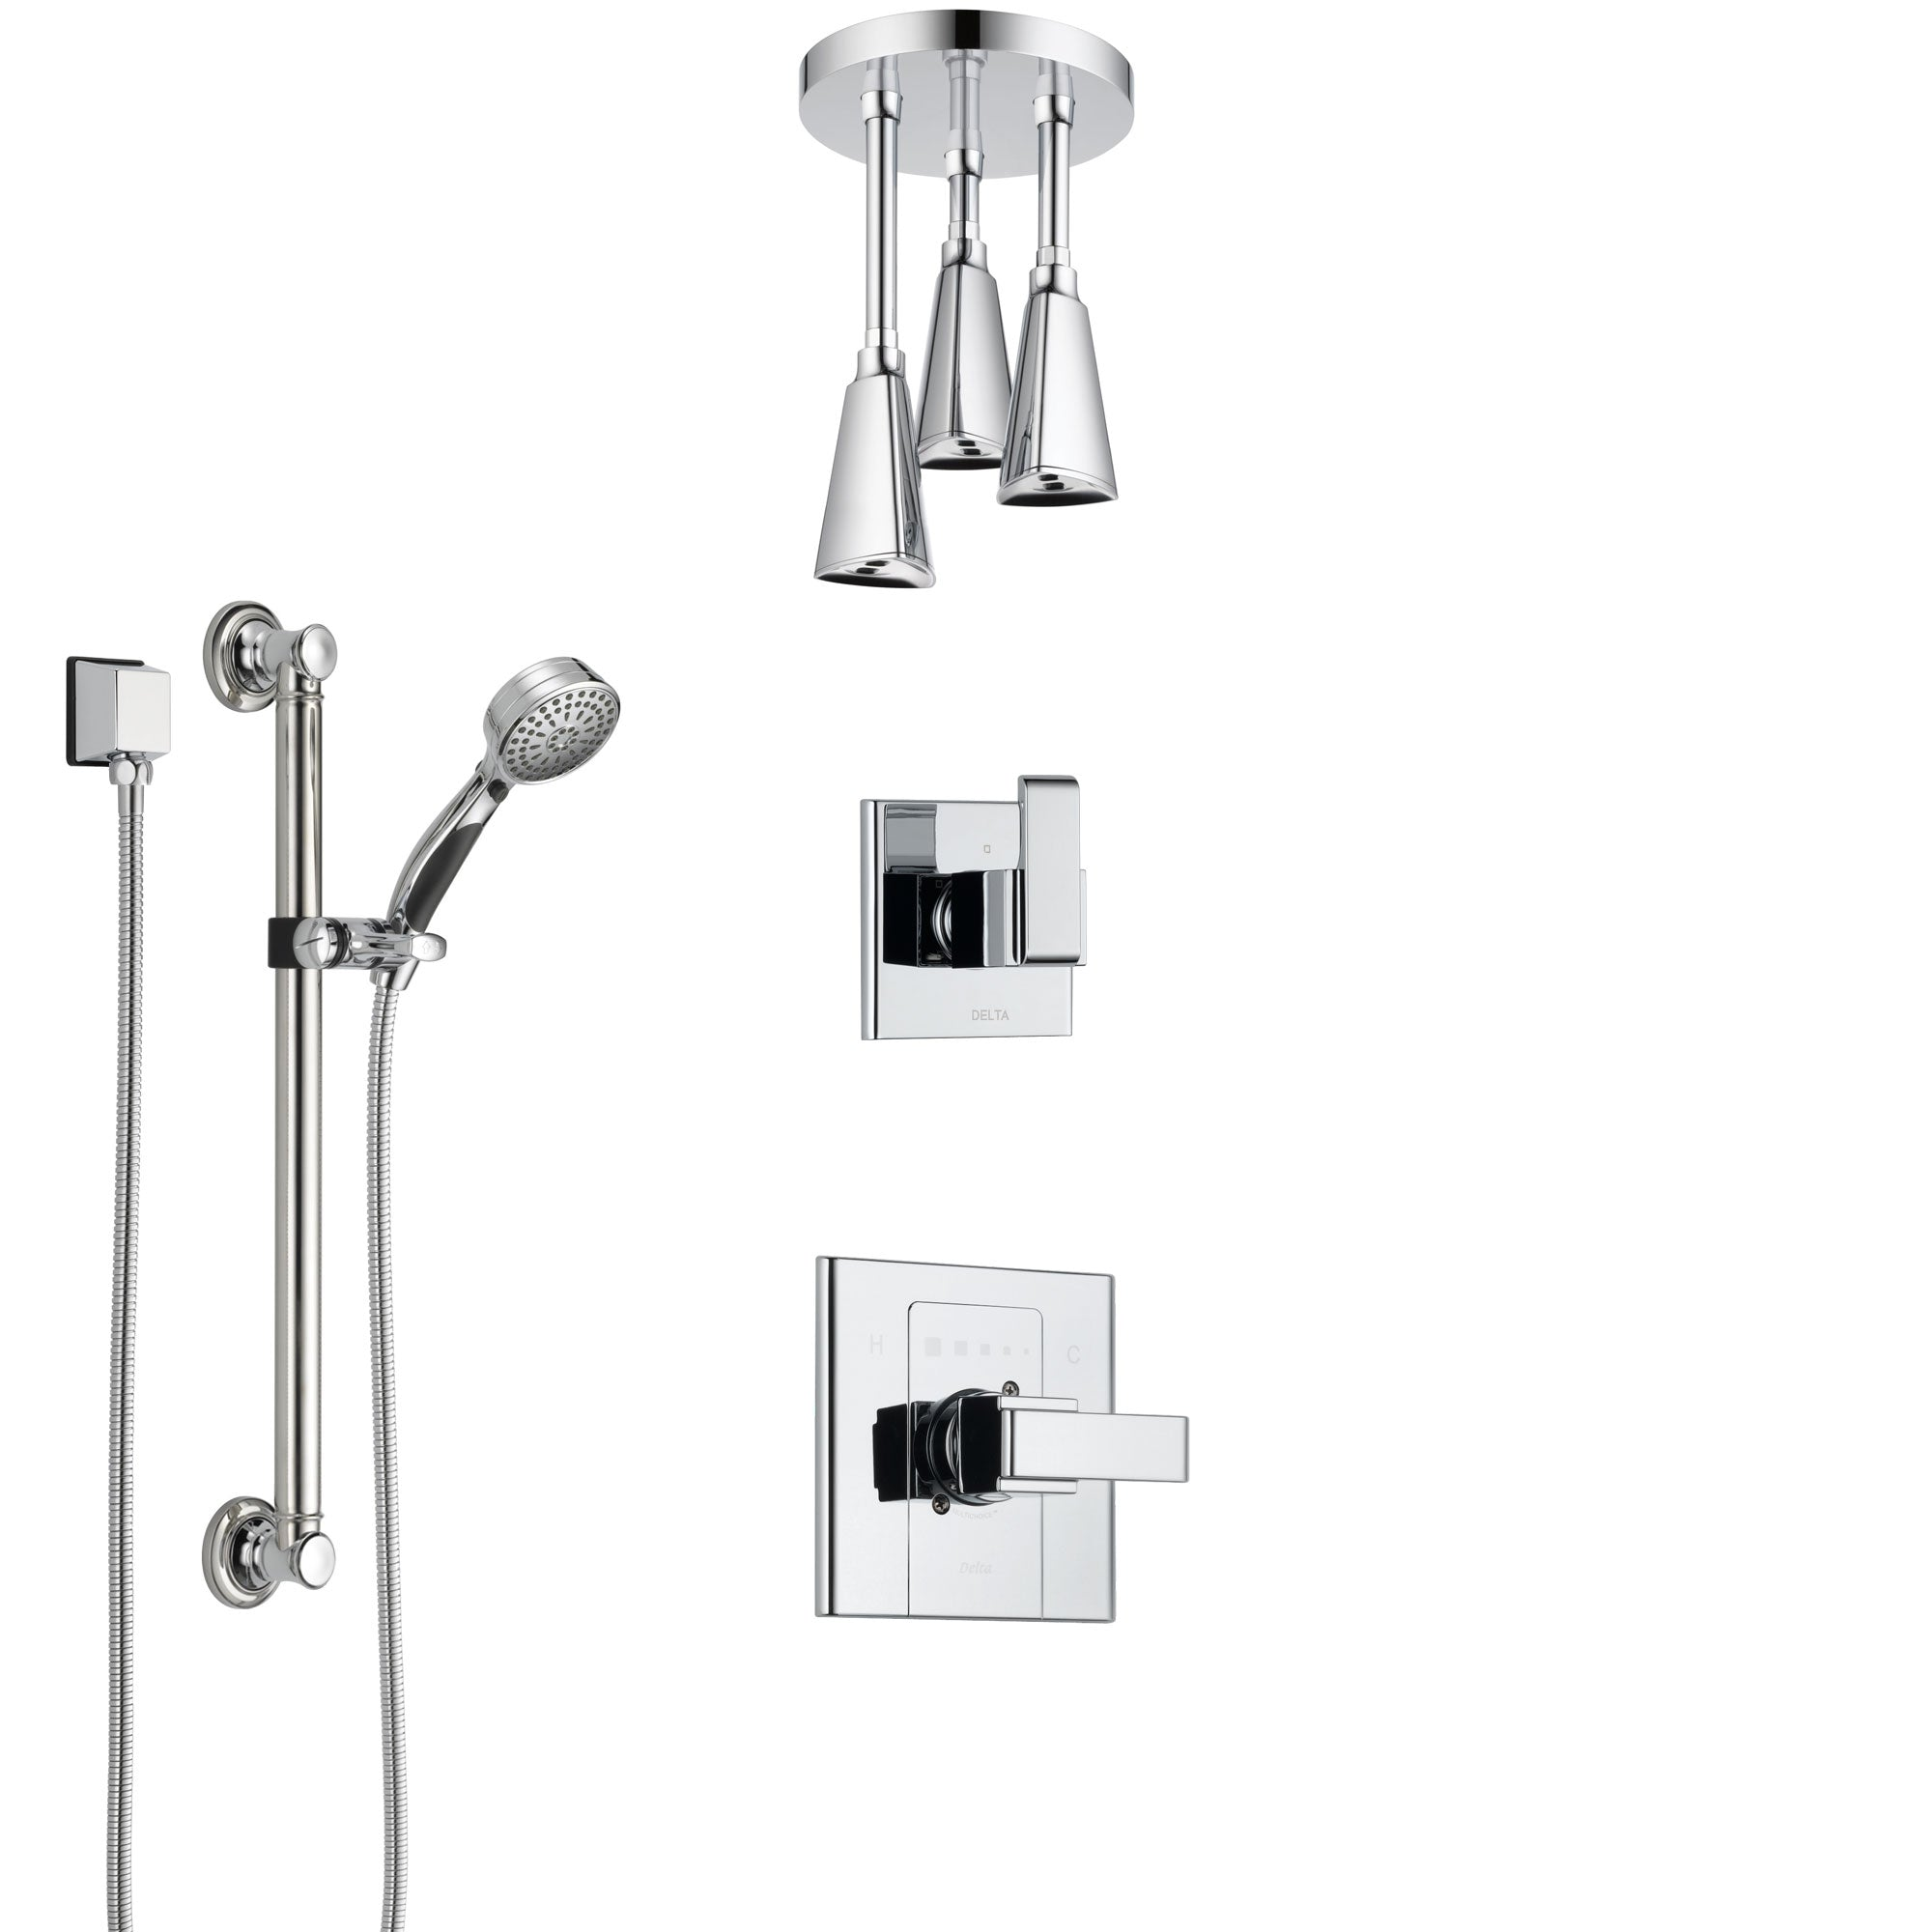 Delta Arzo Chrome Finish Shower System with Control Handle, 3-Setting Diverter, Ceiling Mount Showerhead, and Hand Shower with Grab Bar SS14862